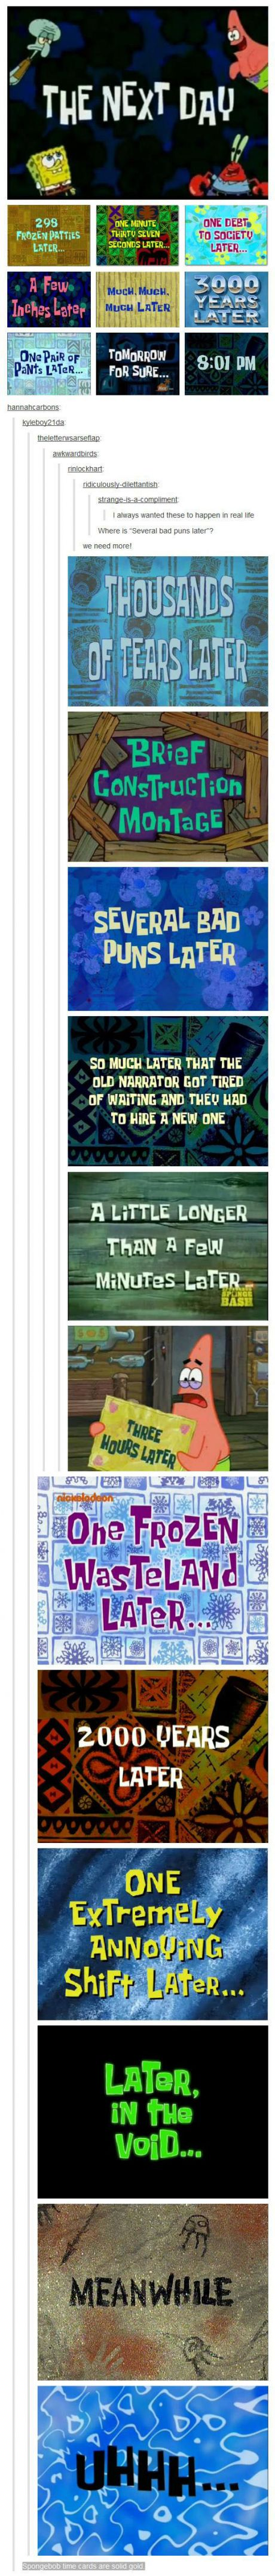 Spongebob Time Cards Are The Best But The All Important One